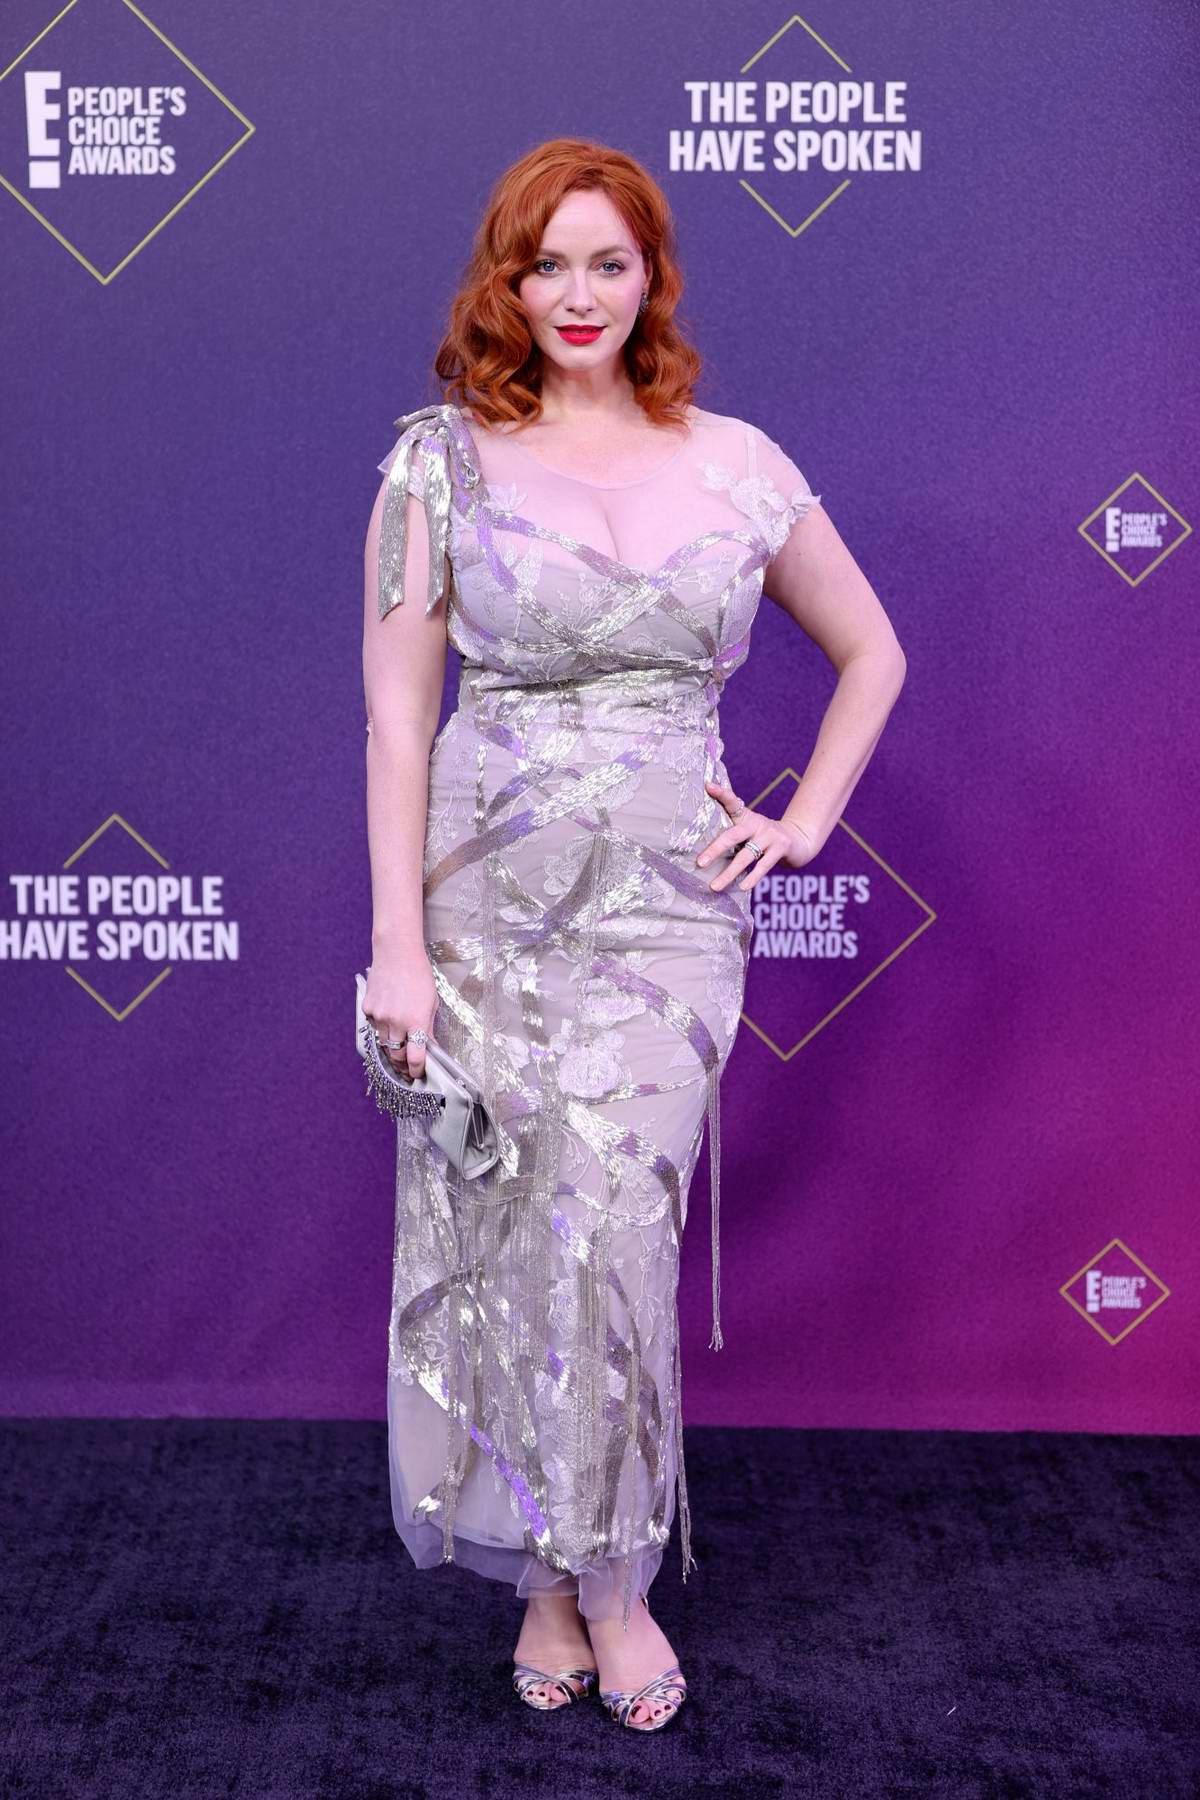 Christina Hendricks attends the 2020 E! People's Choice Awards at The Barker Hangar in Santa Monica, California